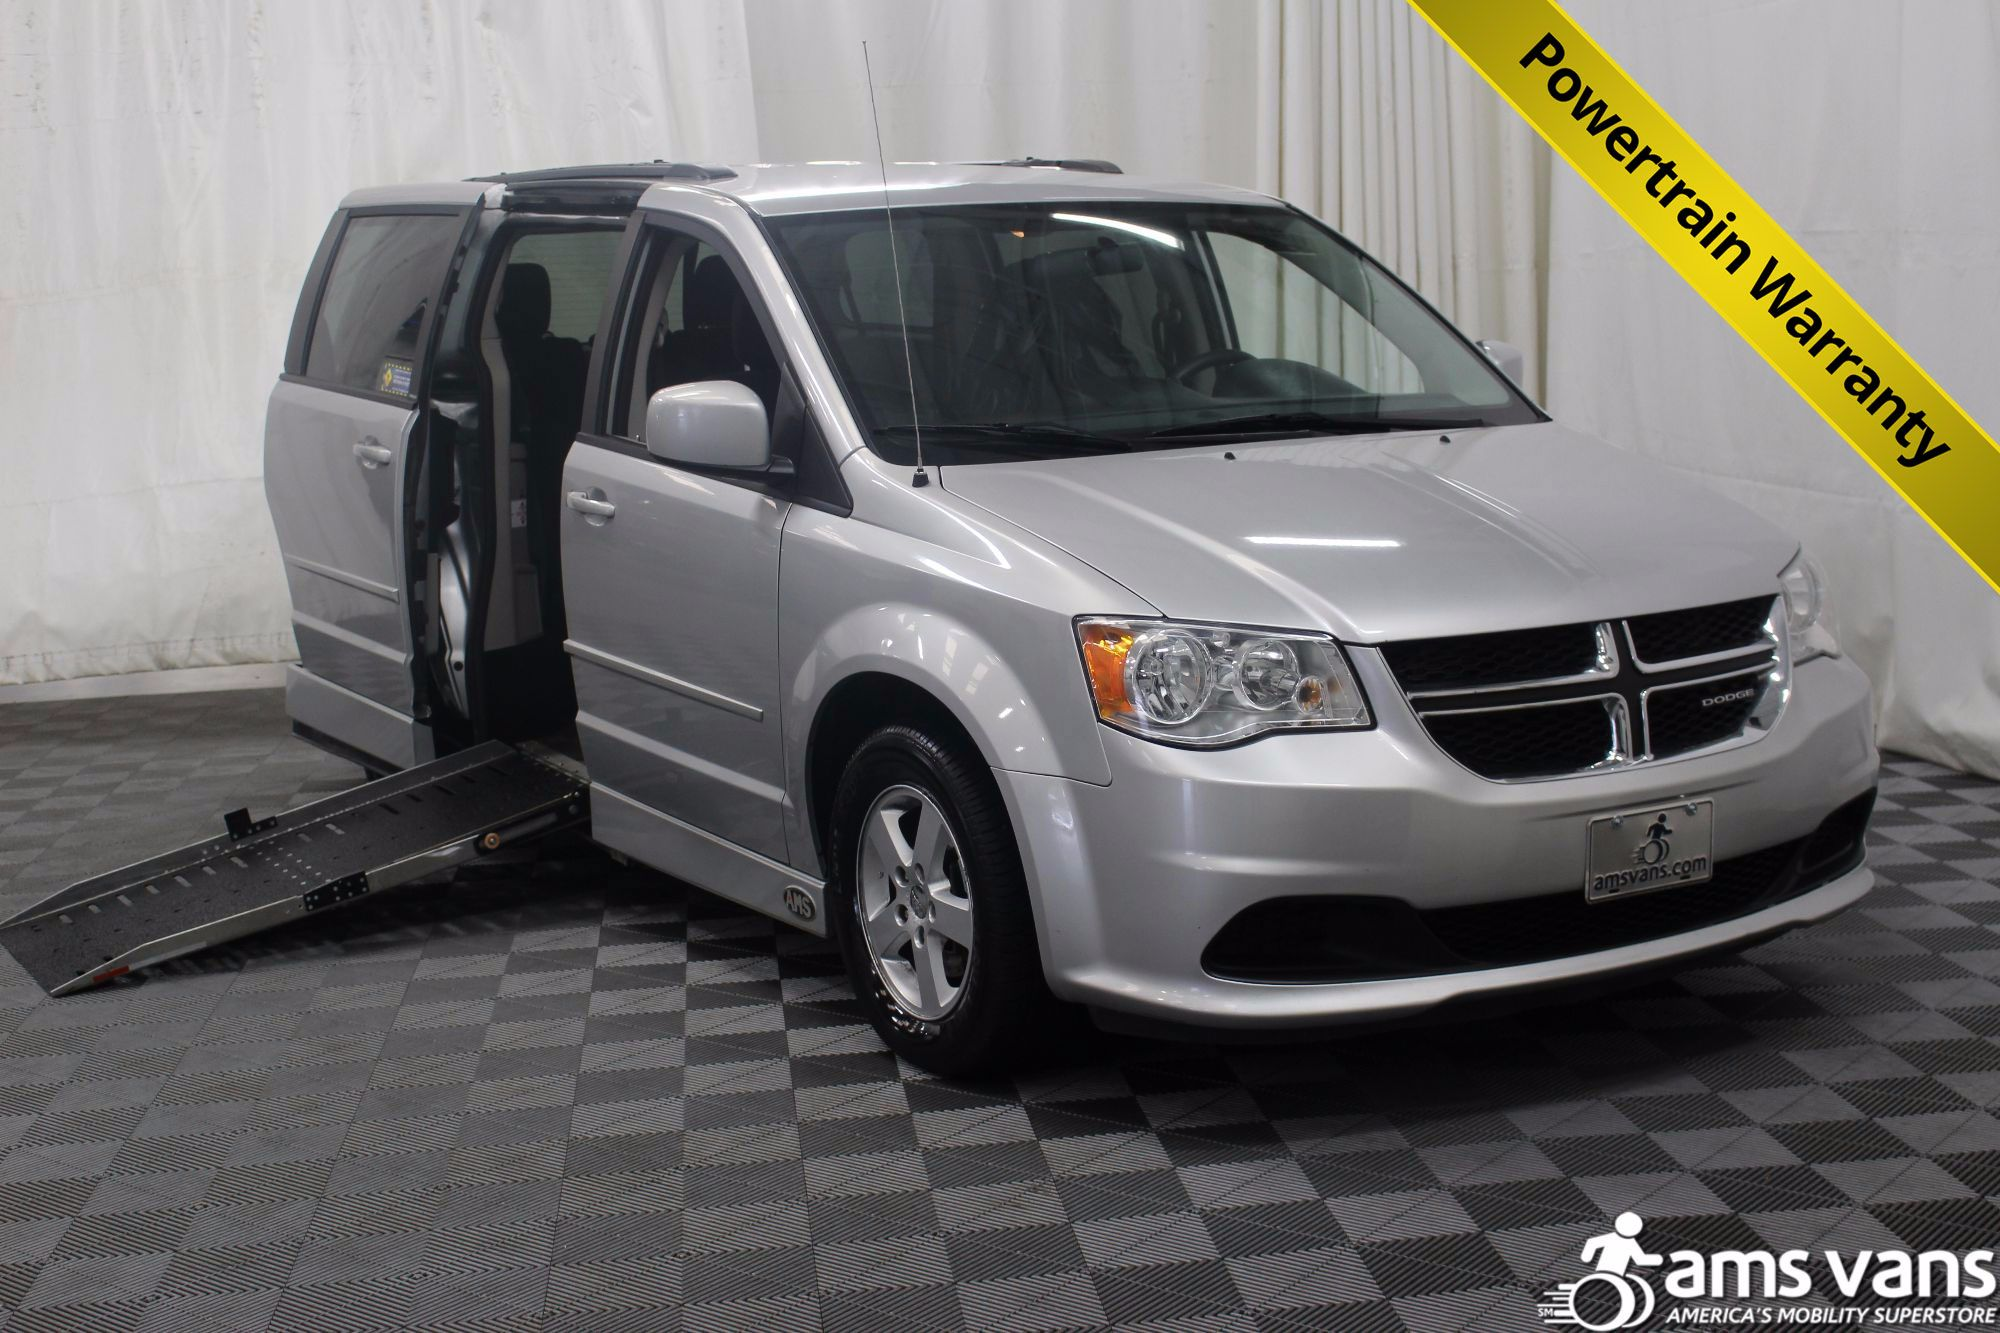 2011 Dodge Grand Caravan Mainstreet Wheelchair Van For Sale #1